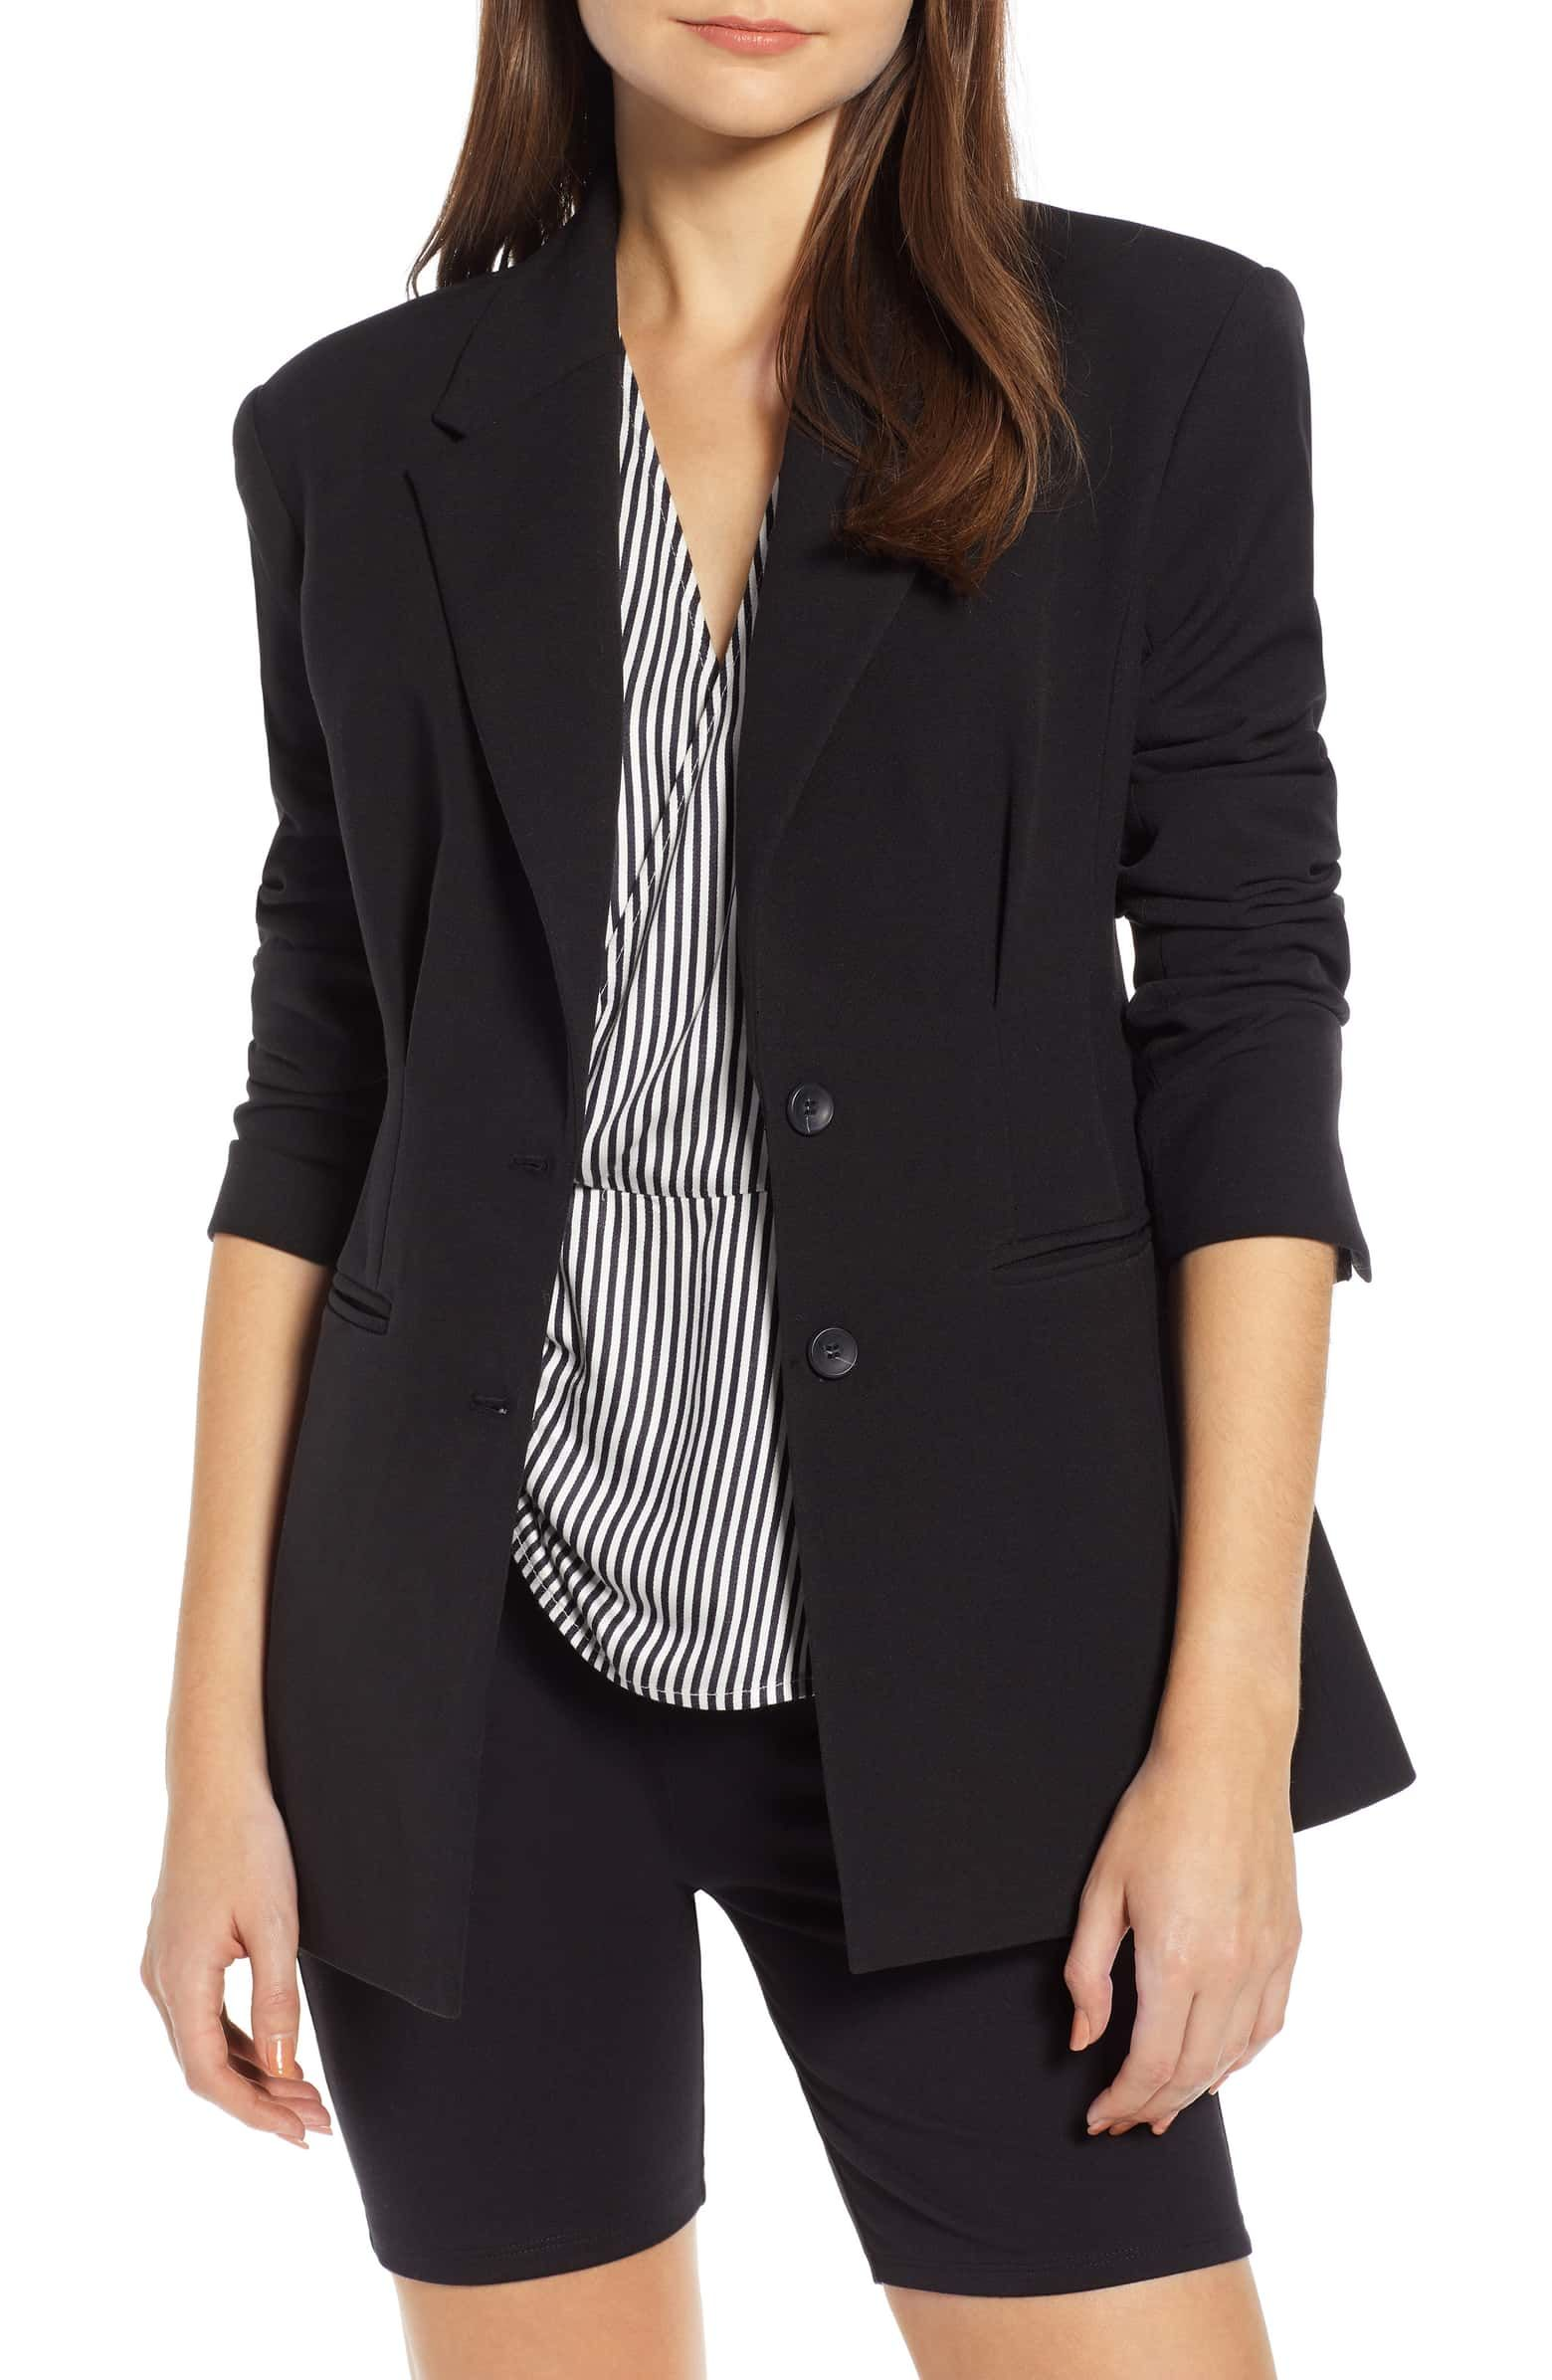 Waist Emphasis Blazer